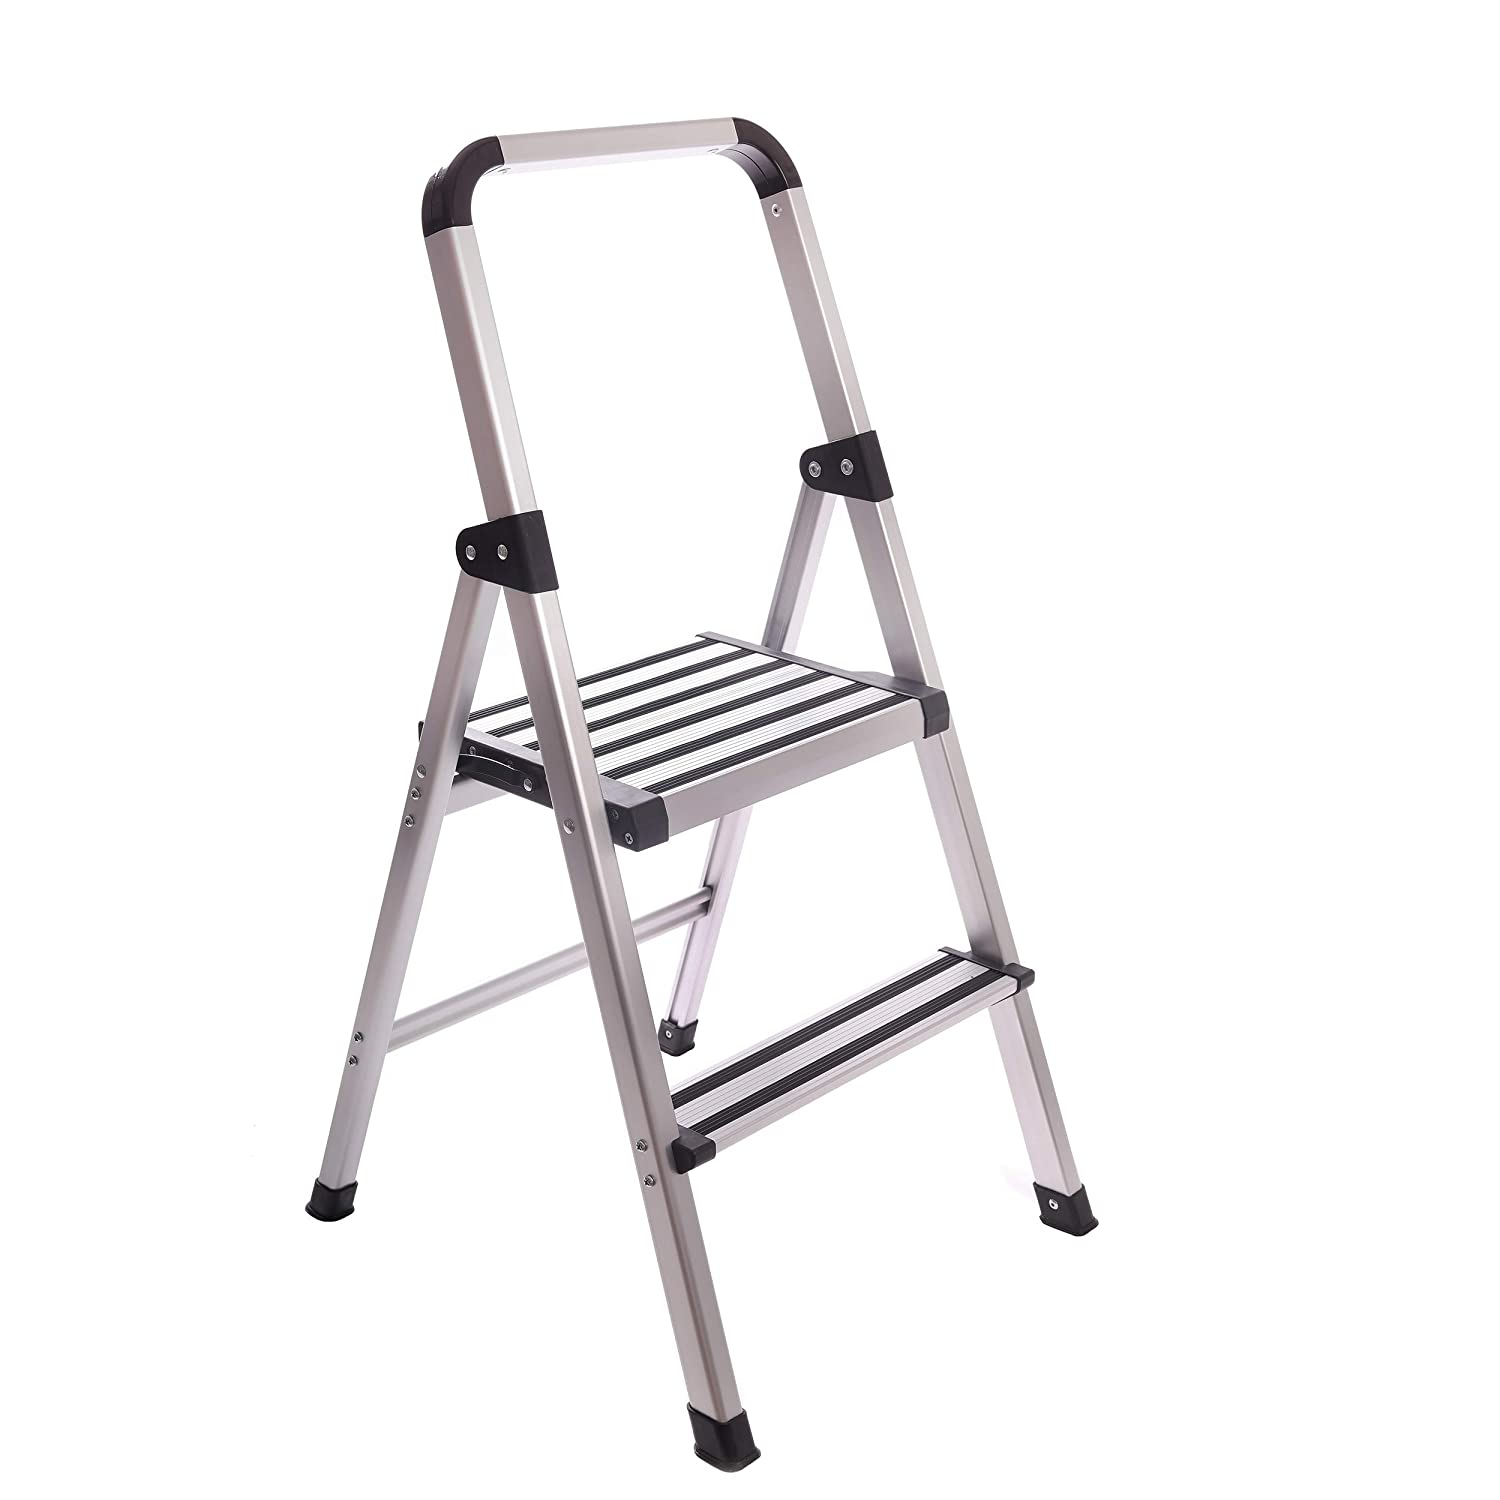 Brilliant Aluminum Folding 2 Step Ladder Anti Slip Sturdy Ultra Lightweight And Slim Design Heavy Duty Silver Inzonedesignstudio Interior Chair Design Inzonedesignstudiocom